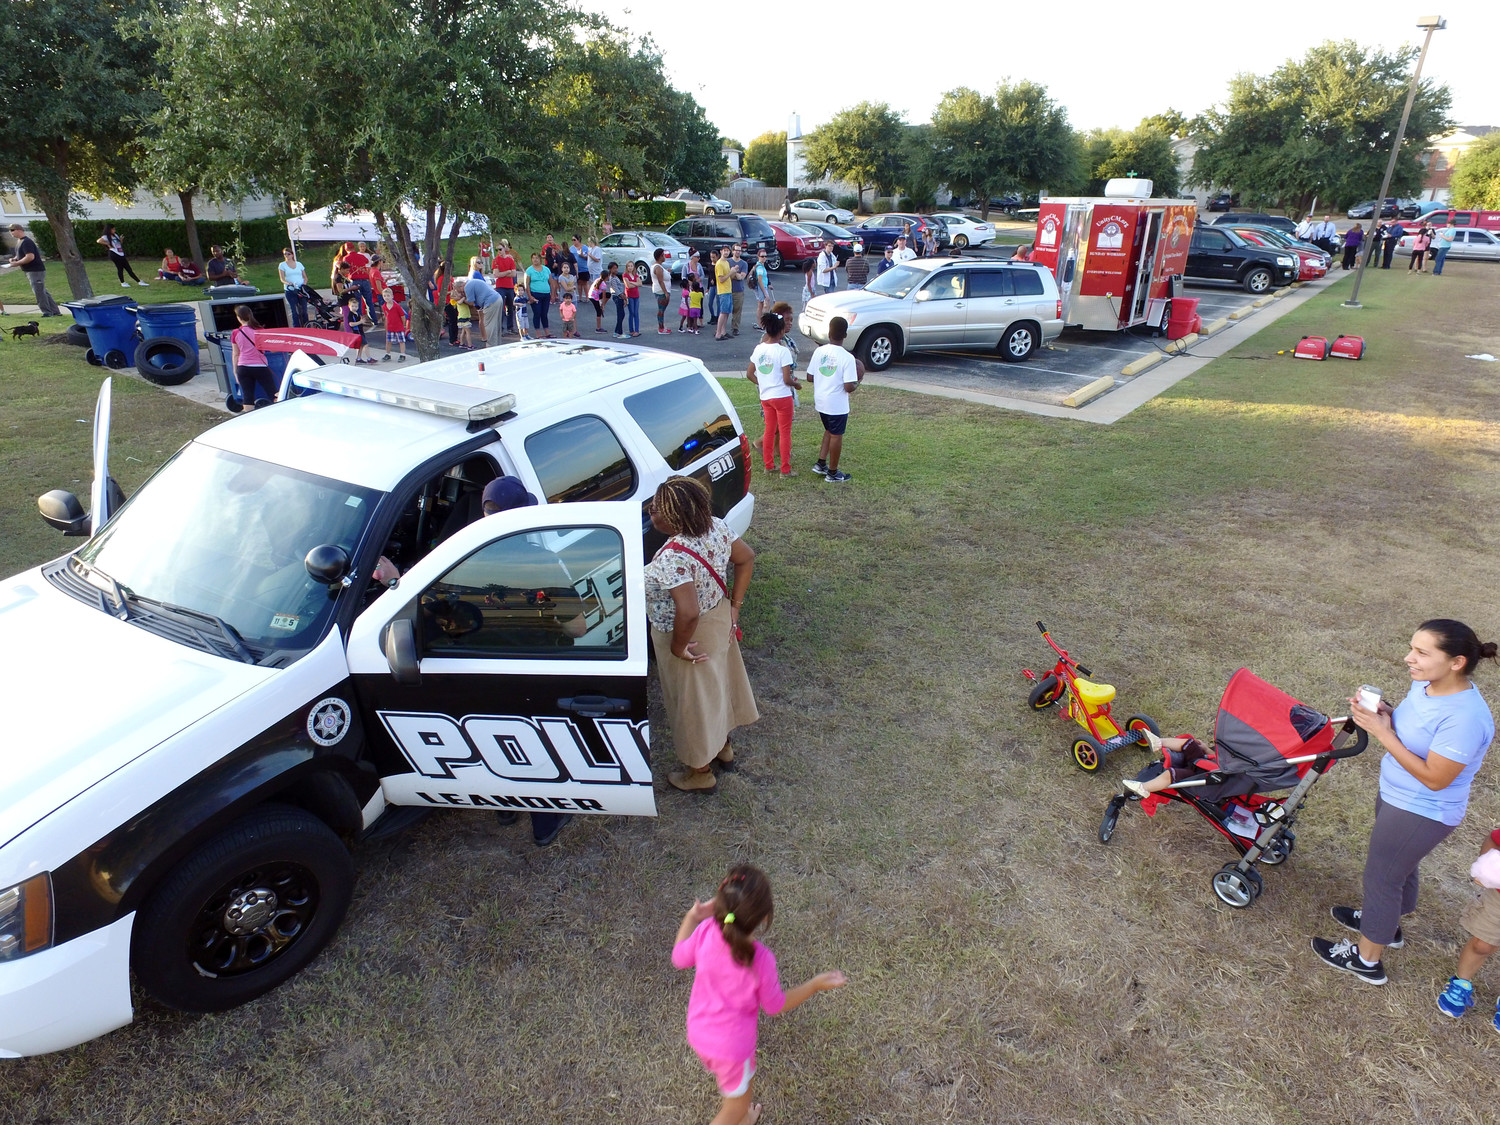 The goal of the Leander and Cedar Park police departments is to visit each participating neighborhood during National Night Out. The city fire departments, EMS and government officials will also frequent some of the gatherings.